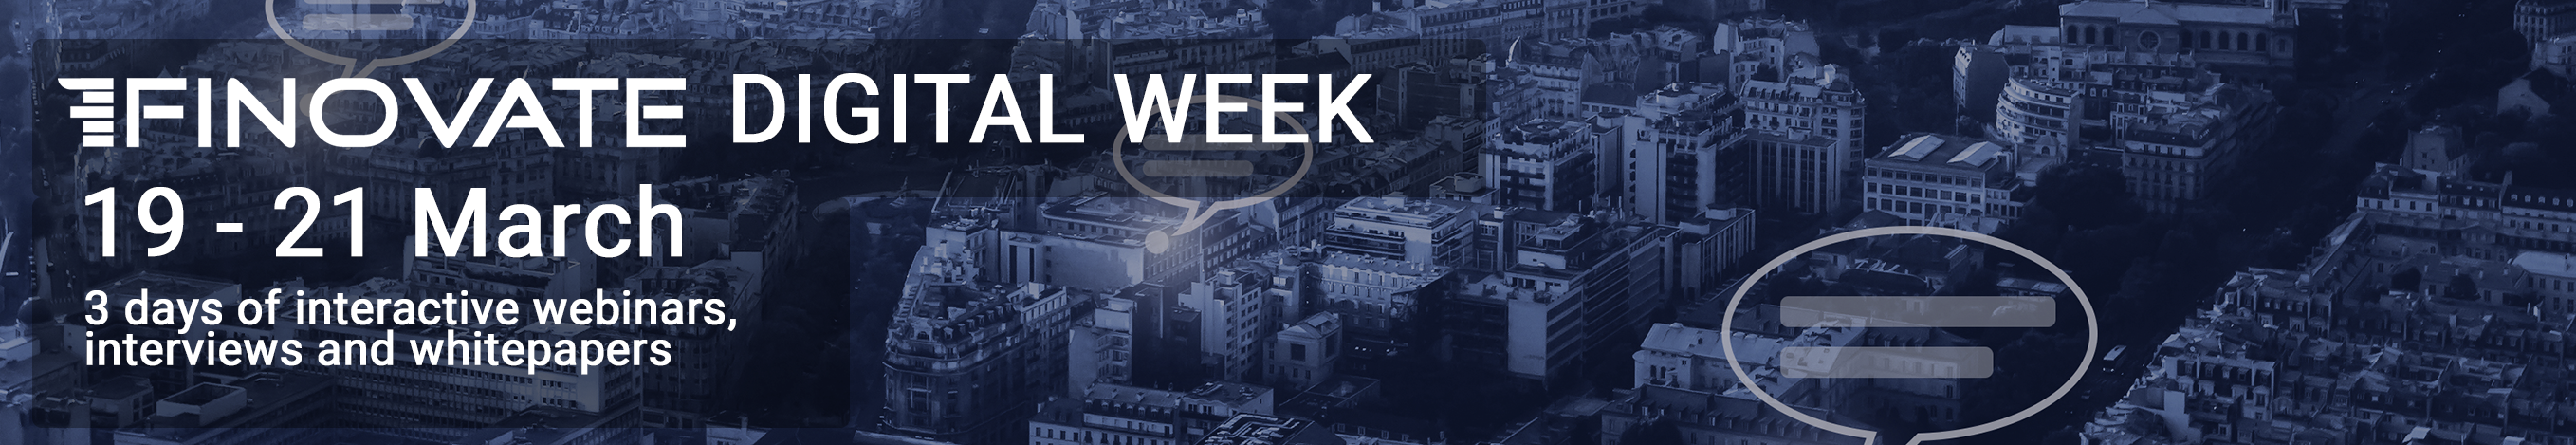 Finovate Live: Digital Week